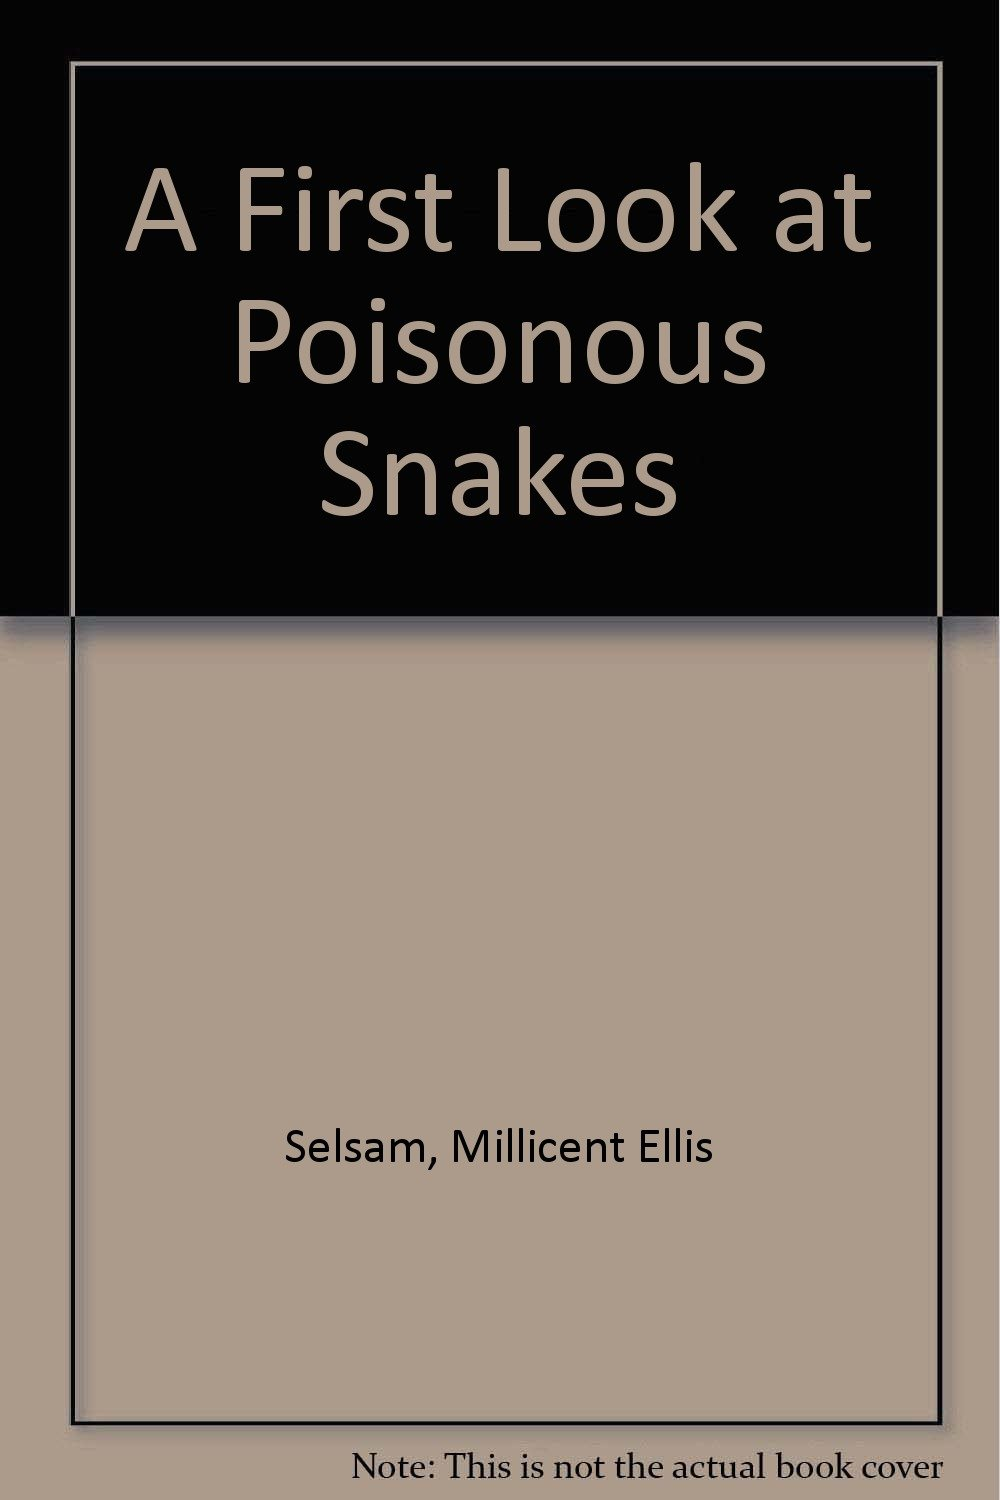 A First Look at Poisonous Snakes (First Look at Series)